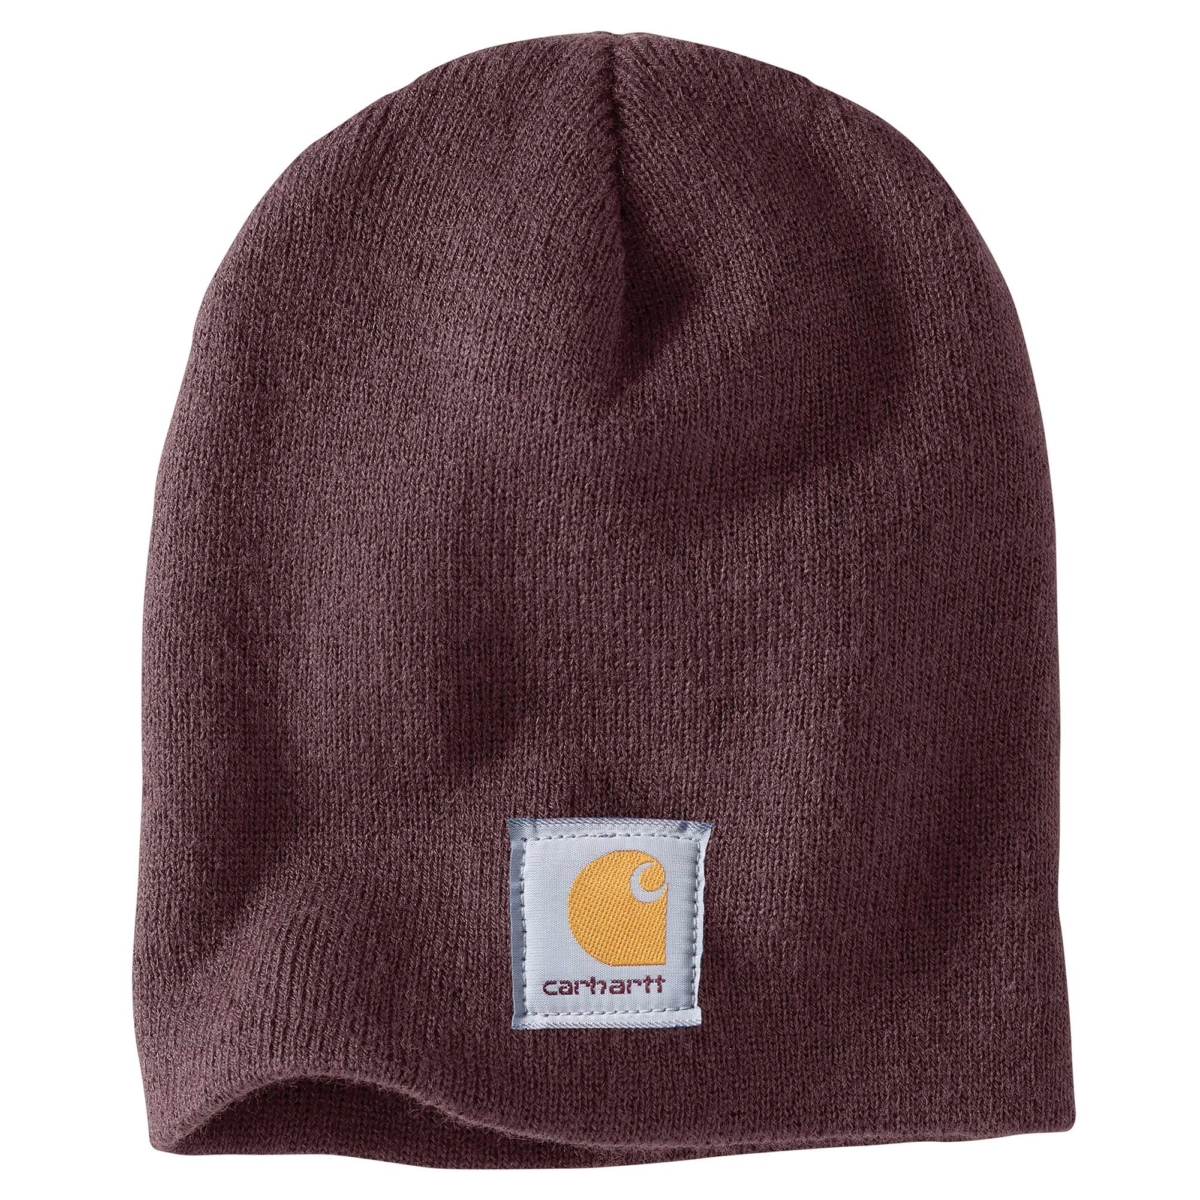 Carhartt Acrylic Knit Hat Deep Wine USA - GOOFASH - Womens HATS